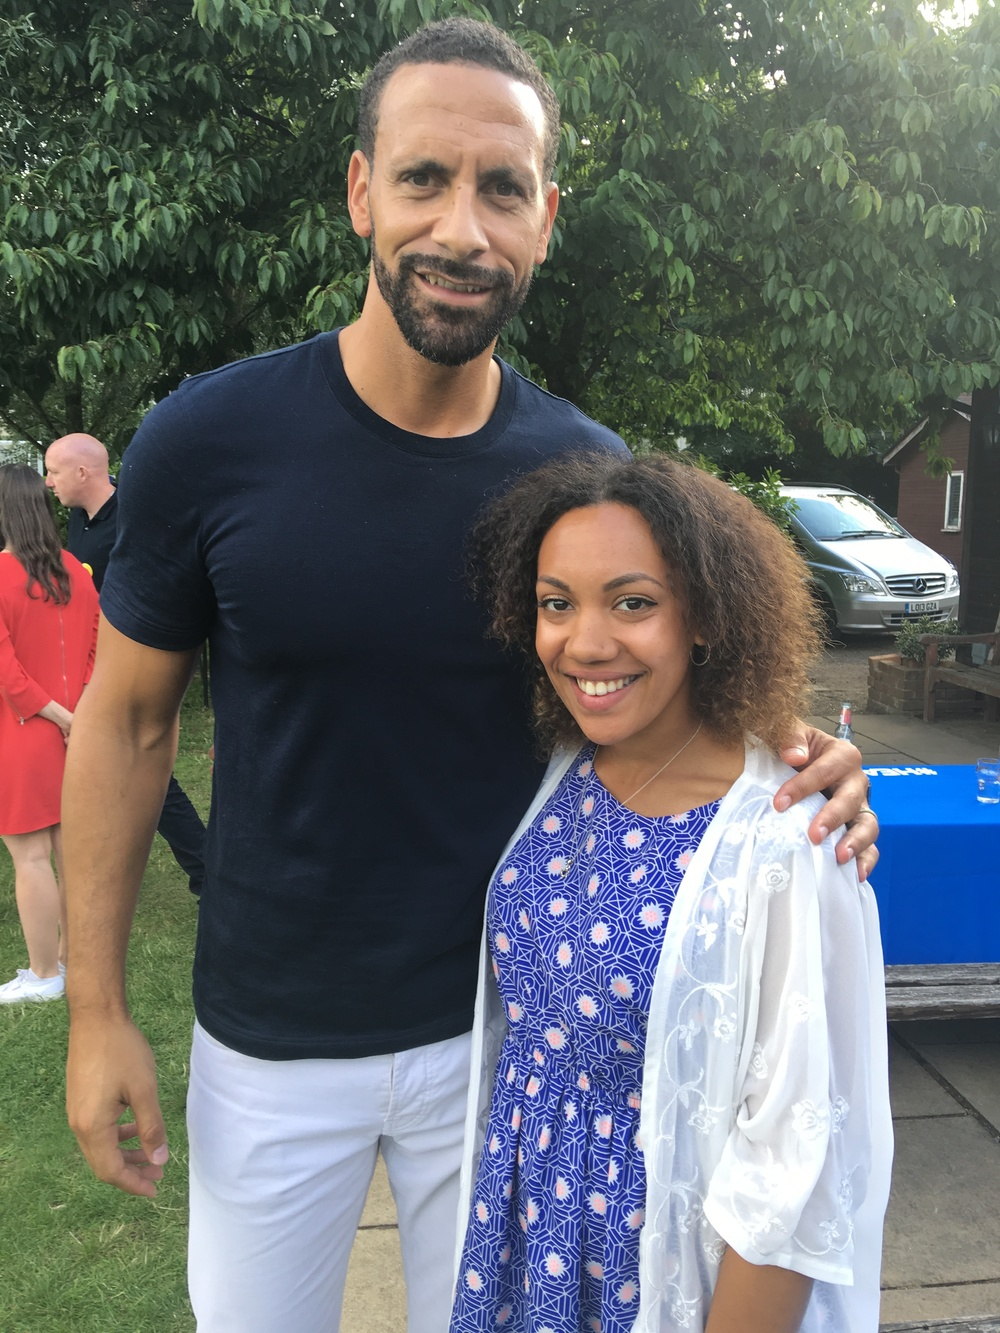 Rio Ferdinand is two heads bigger than me.